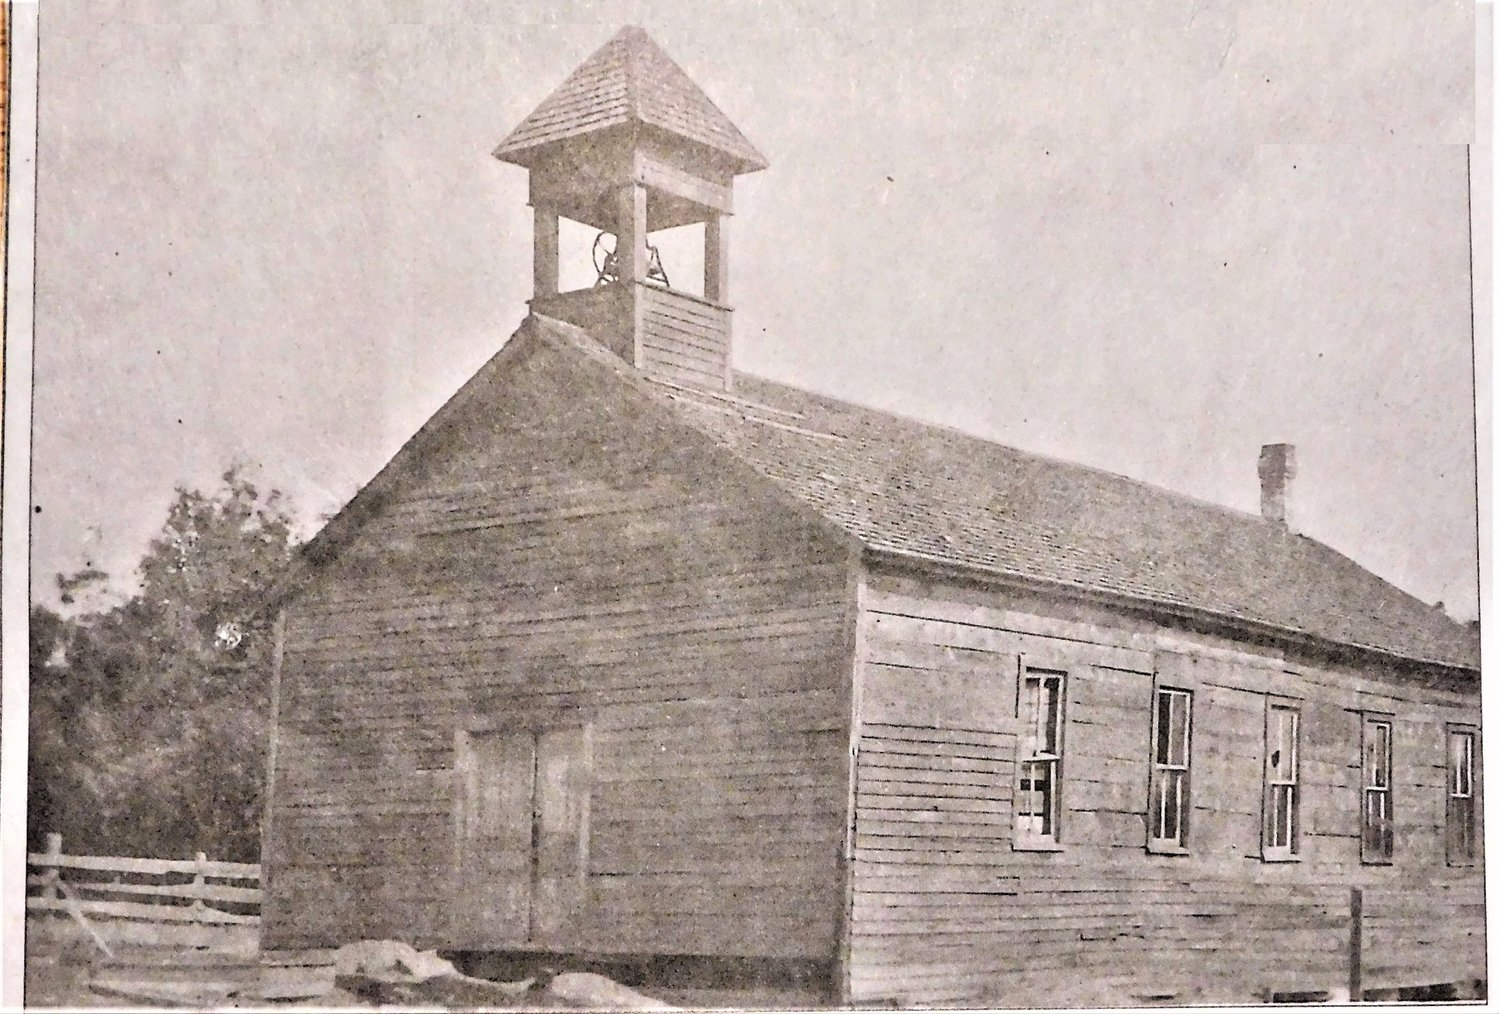 Original Skeels Church built by First Freewill Baptist Church of Sherman Township.